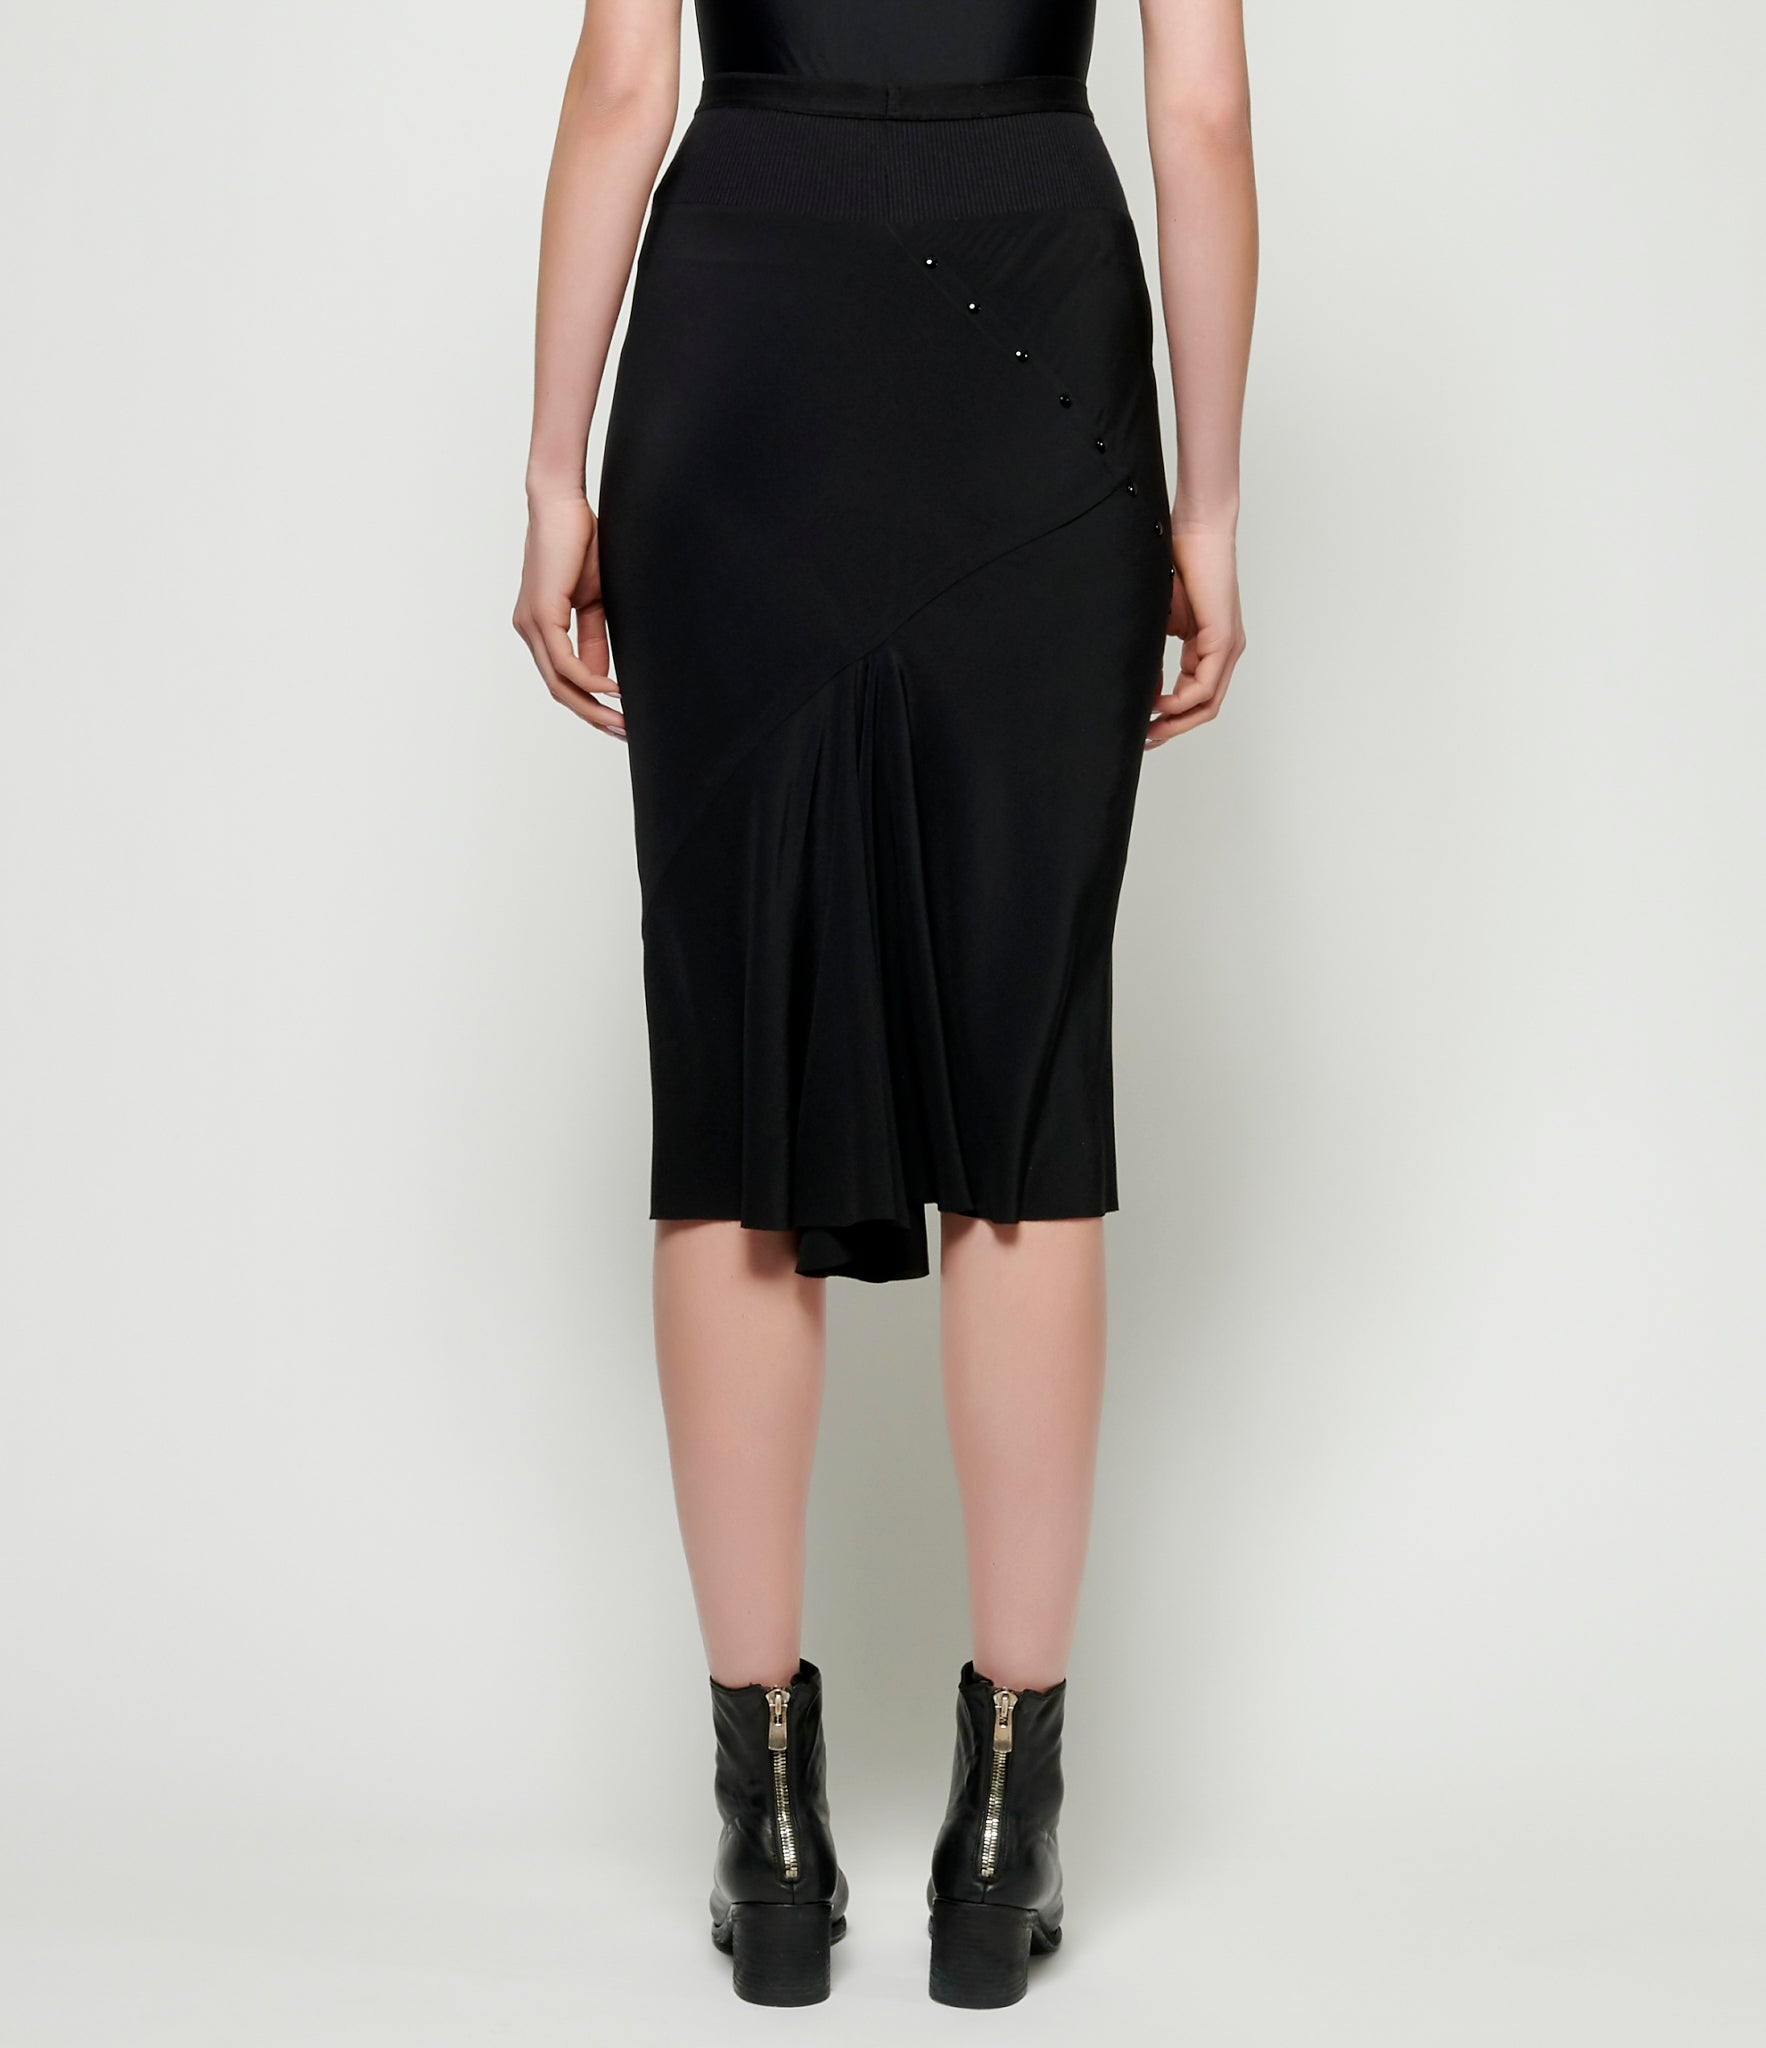 Rick Owens Knee Length Skirt